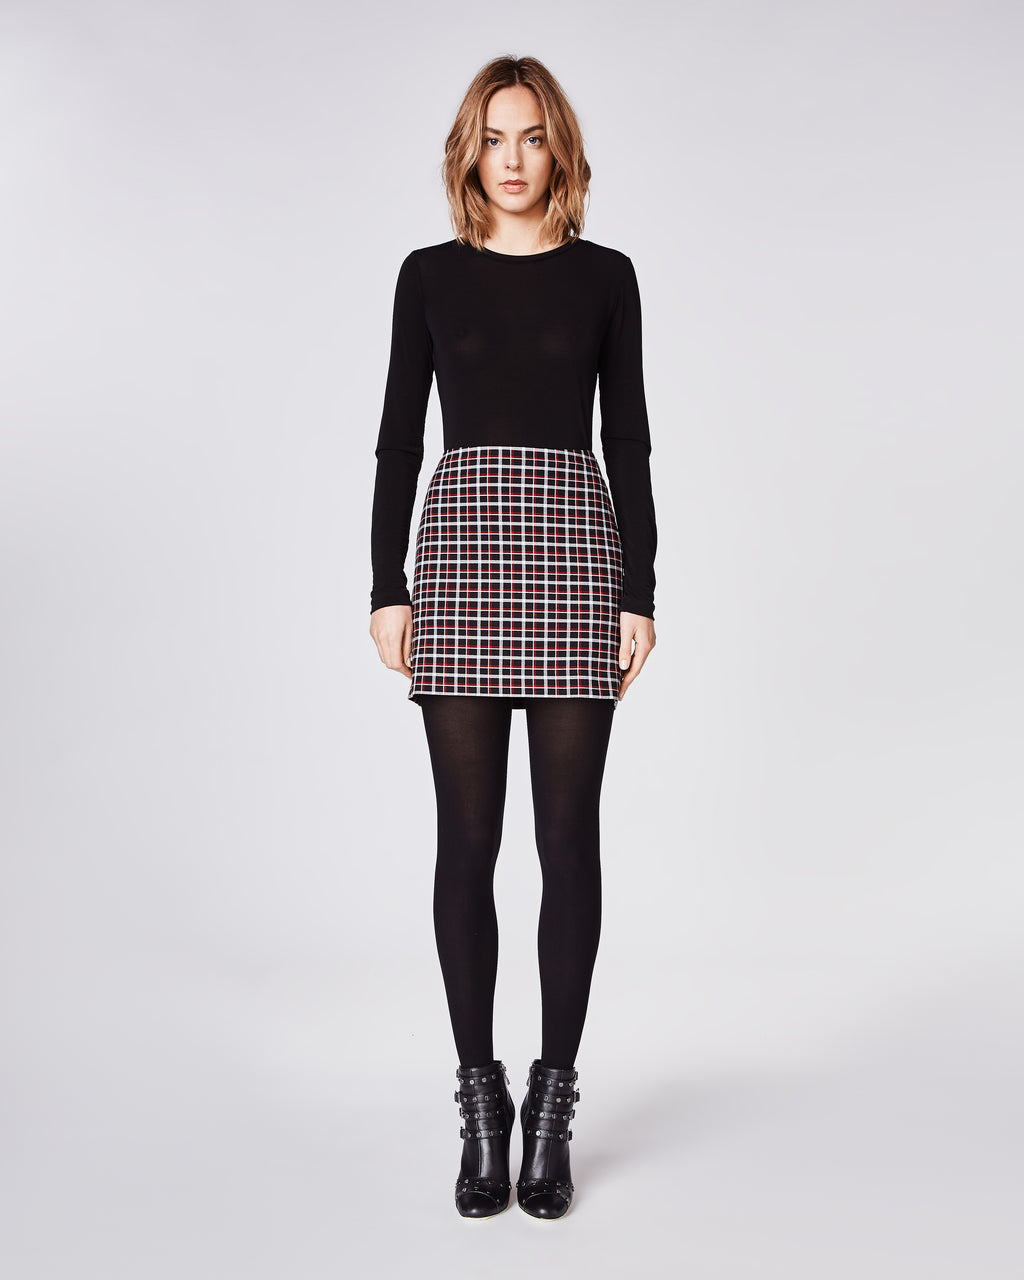 BD10250 - REVERSE PLAID MINI SKIRT - bottoms - skirts - A modern mini. This playful skirt falls mid-thigh and features a black and red plaid print. Finishedwith a concealed zipper and fully lined.